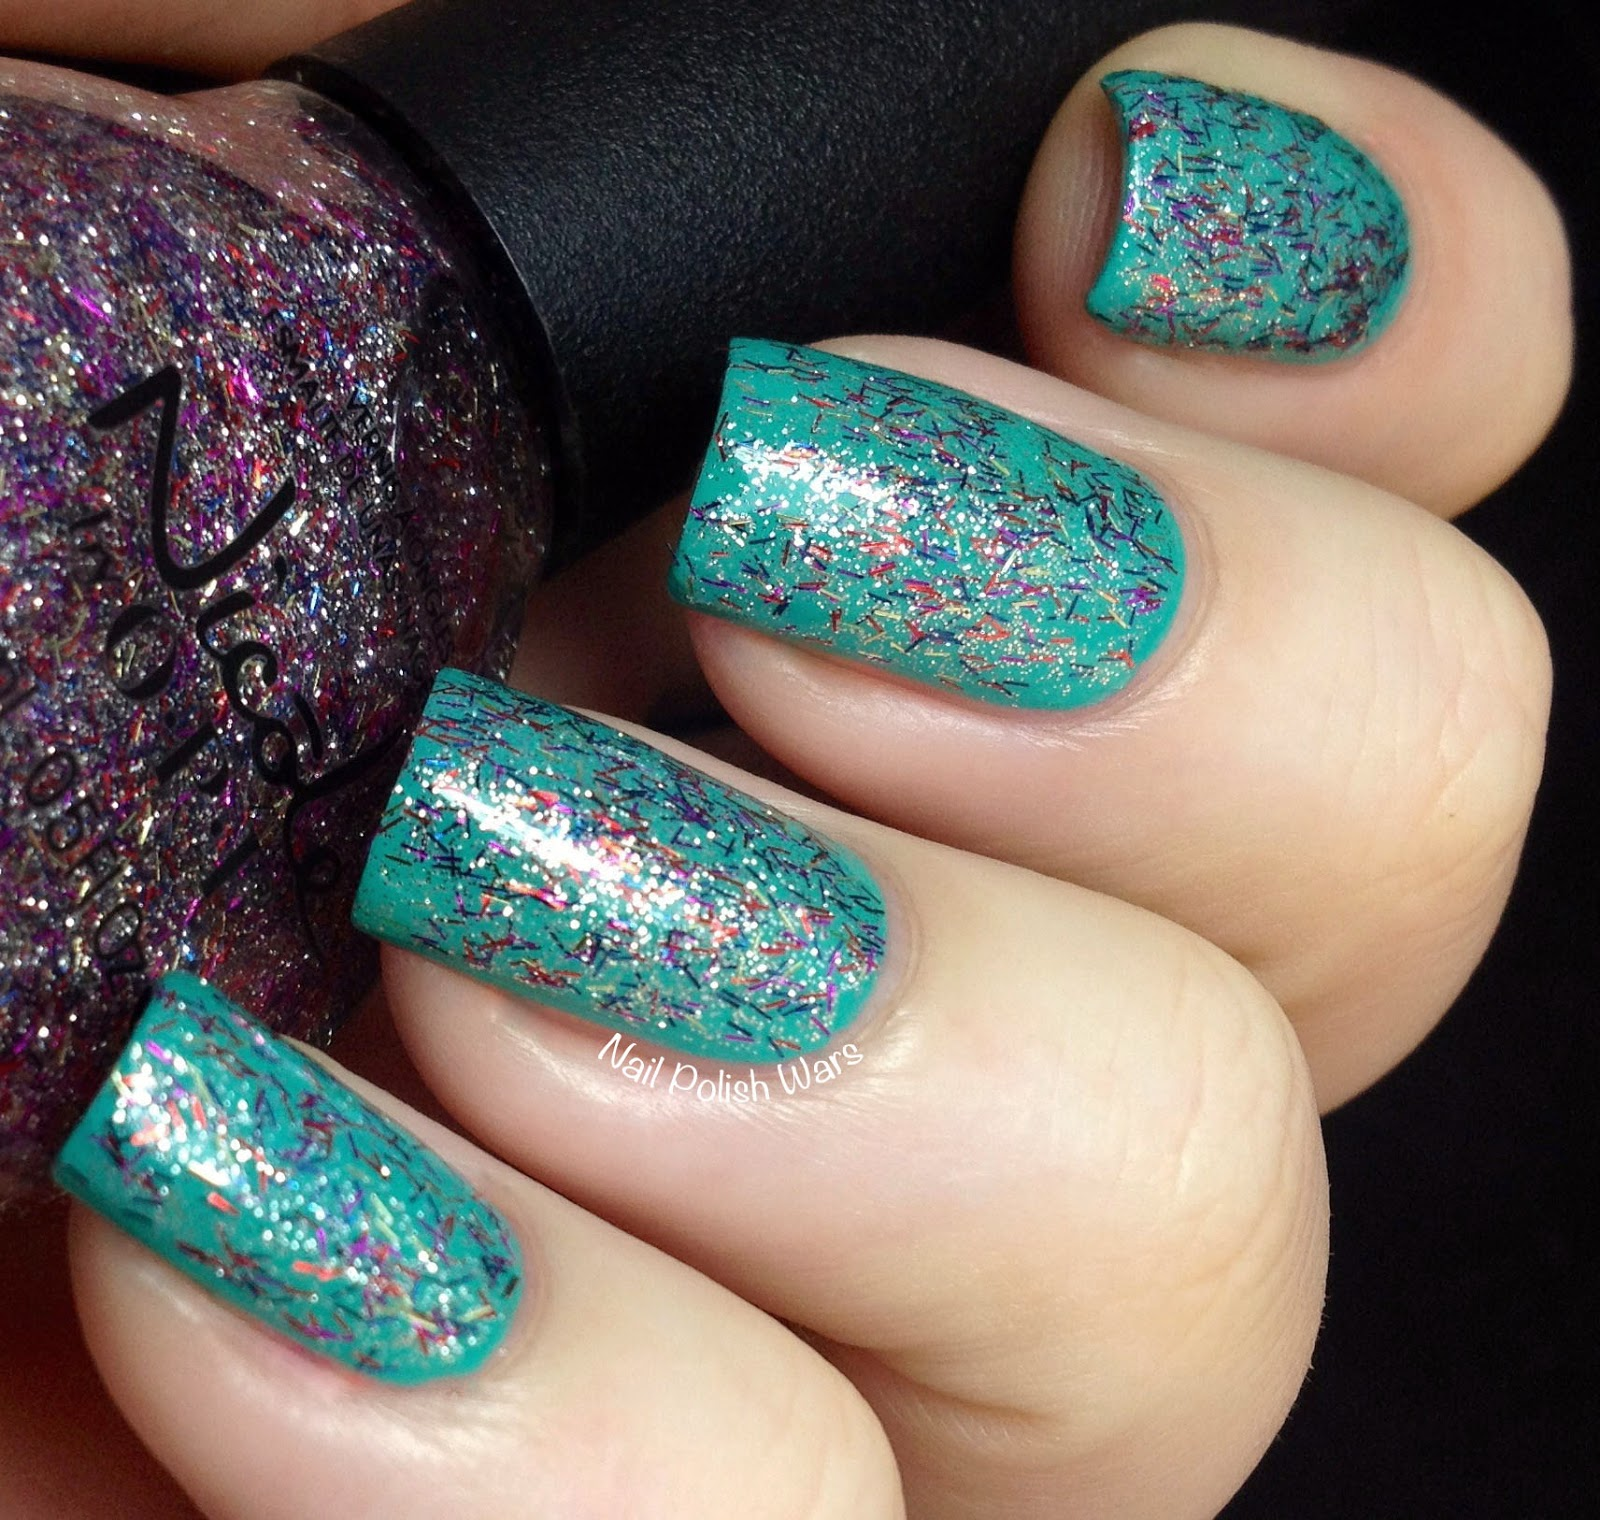 Nail Polish Wars Nicole By Opi New Core Colors 2014 Swatch Review Amp Comparison